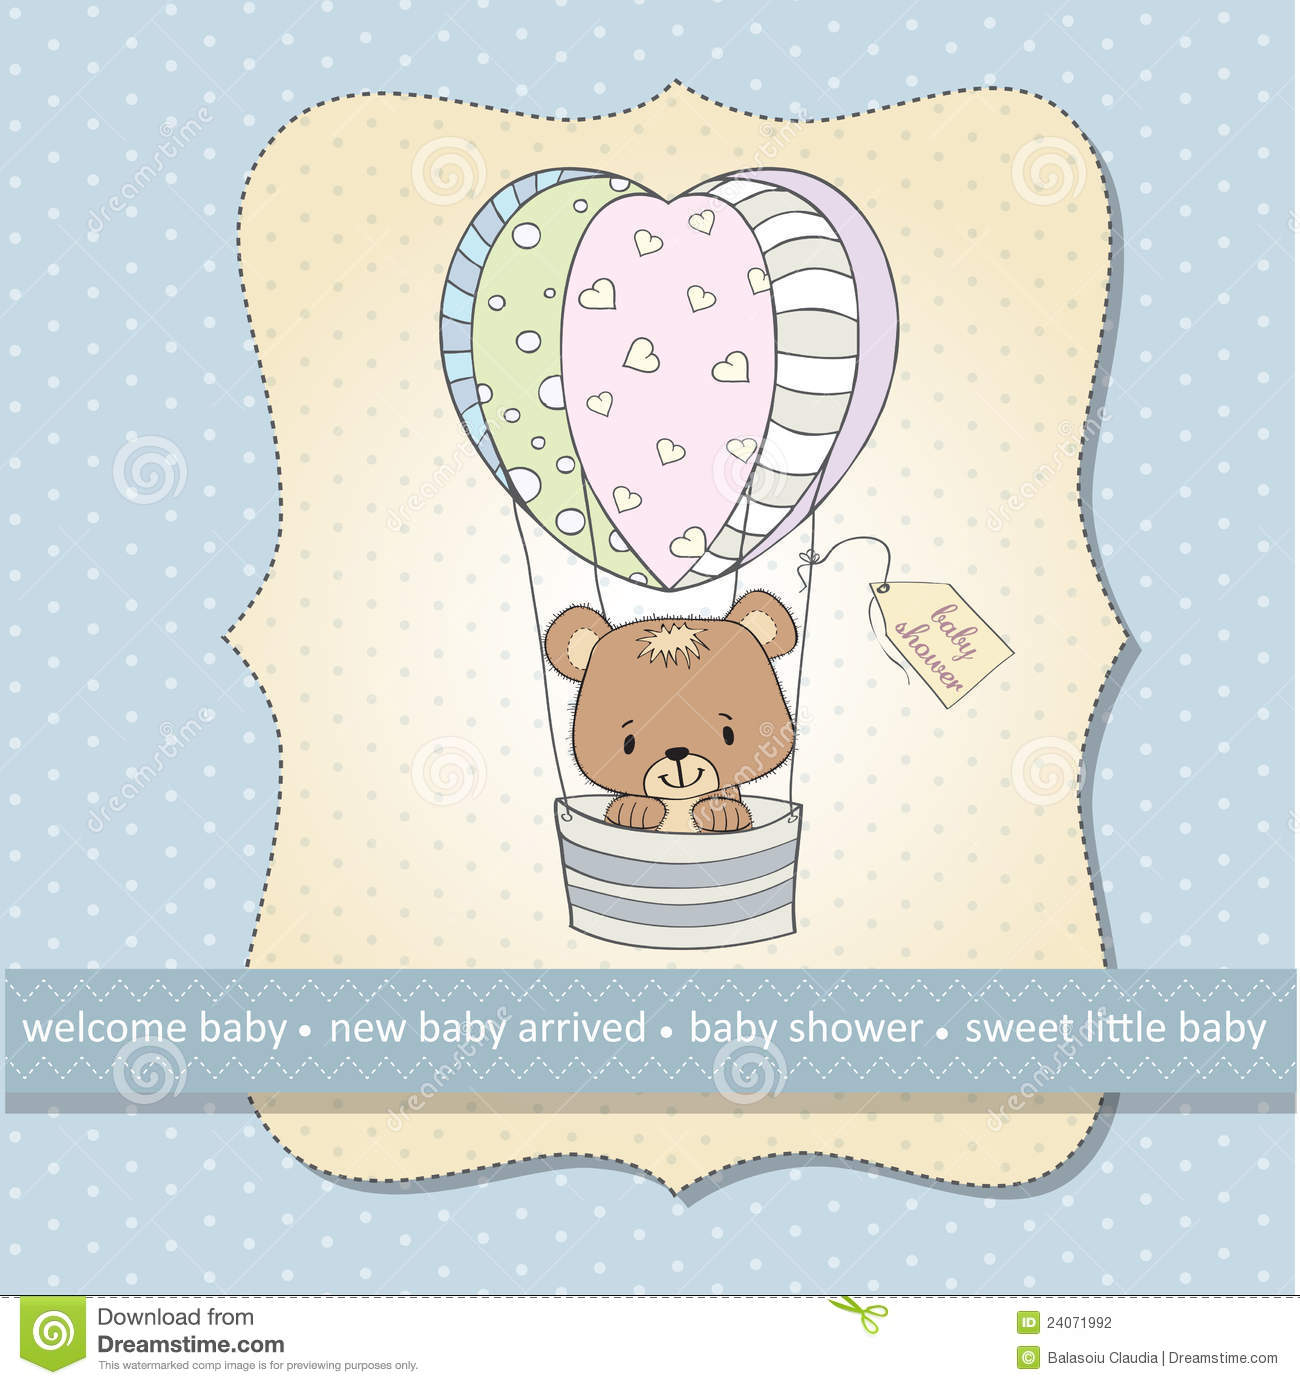 Baby Shower Girl Invitations was awesome invitation ideas